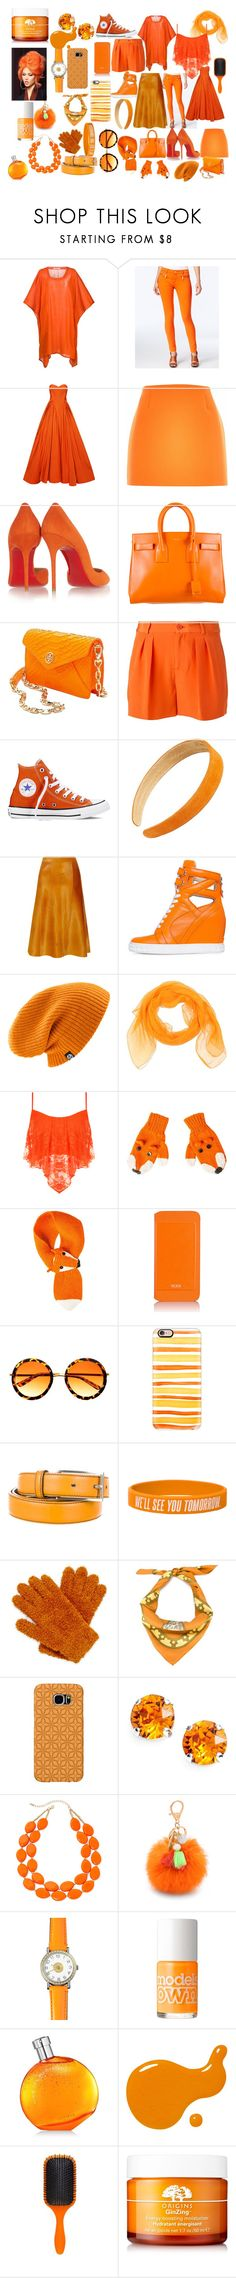 """""""Orange"""" by stitchlover123 ❤ liked on Polyvore featuring moda, Denis Colomb, Michael Kors, Zac Posen, River Island, Christian Louboutin, Yves Saint Laurent, Tory Burch, Polo Ralph Lauren e Converse"""